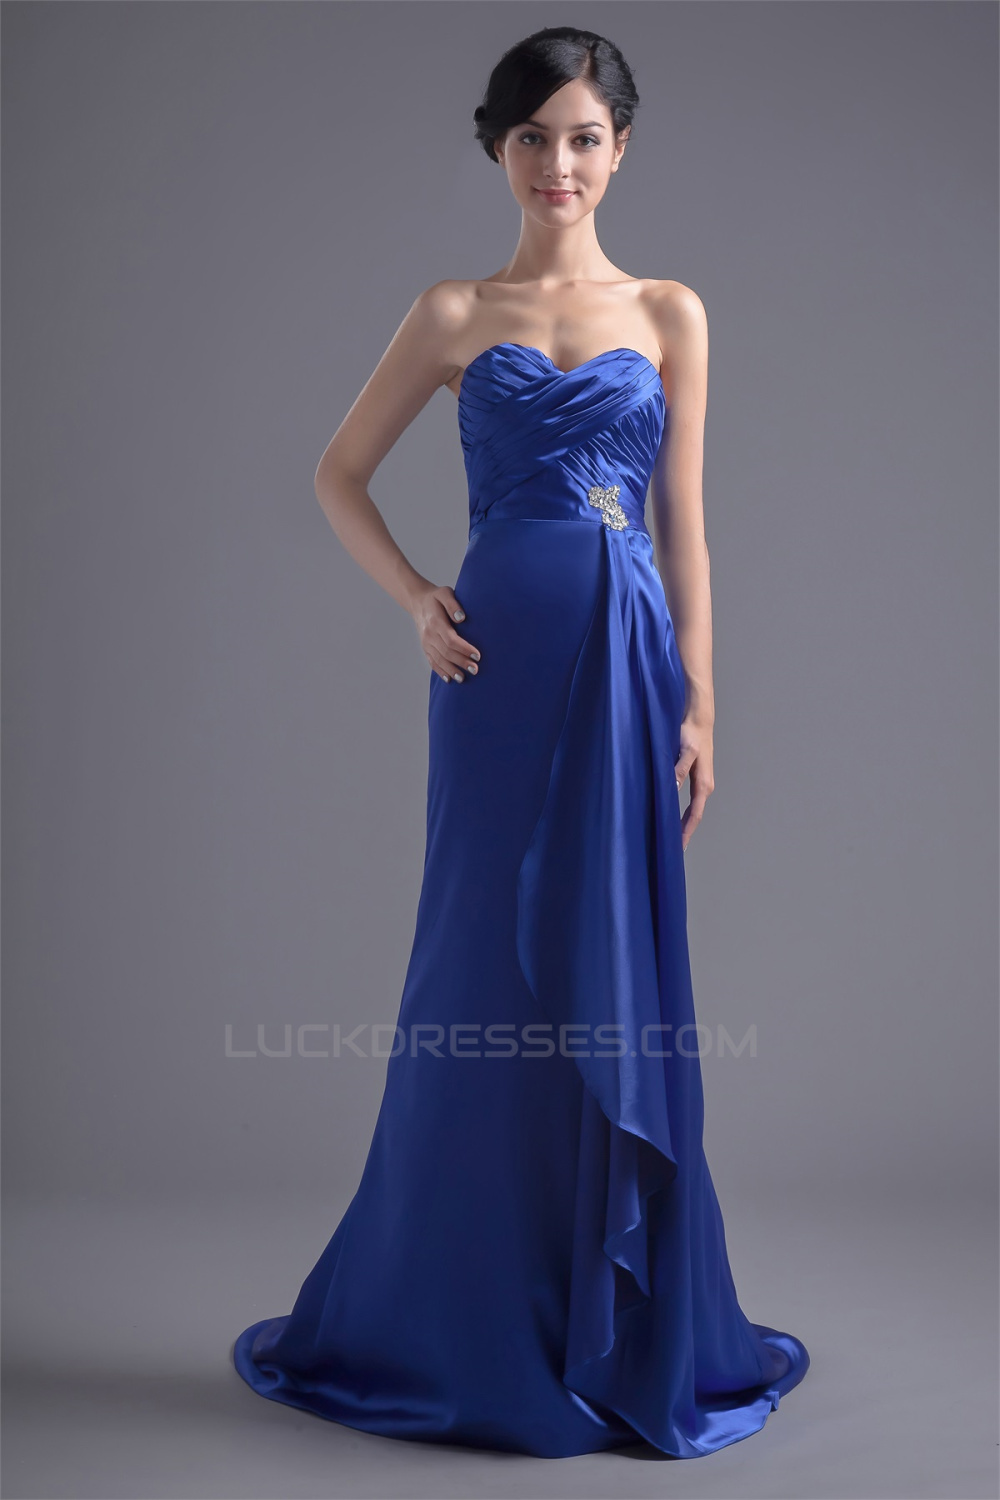 Satin Woven bridesmaid homecoming dresses